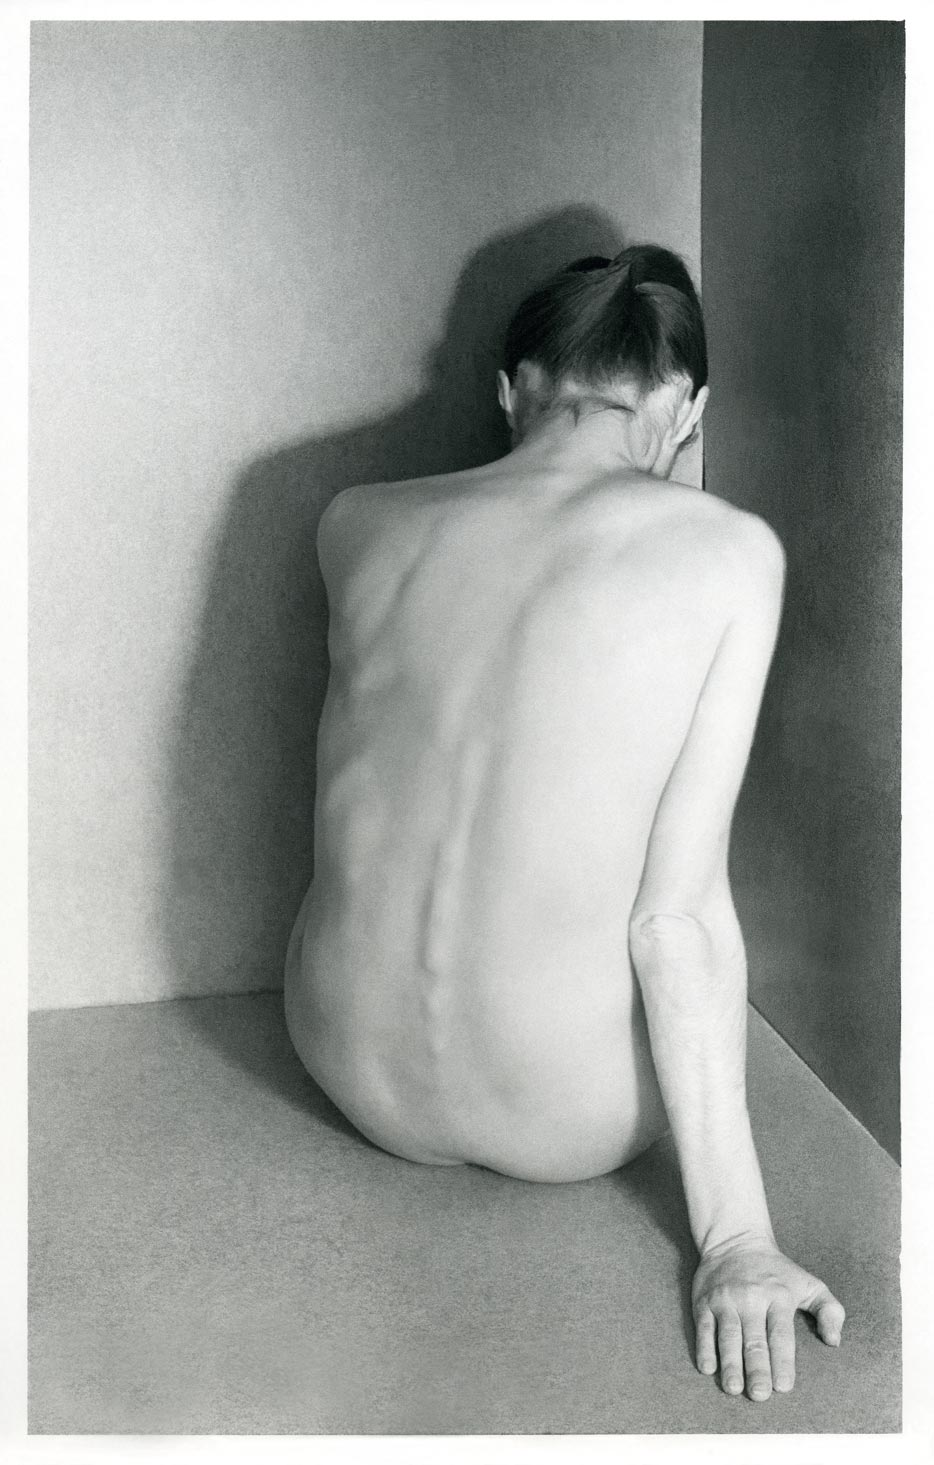 Violeta Bubelytė, Nude, 23, 1983, 2,7 x 19,2 cm. From the MO museum collection.